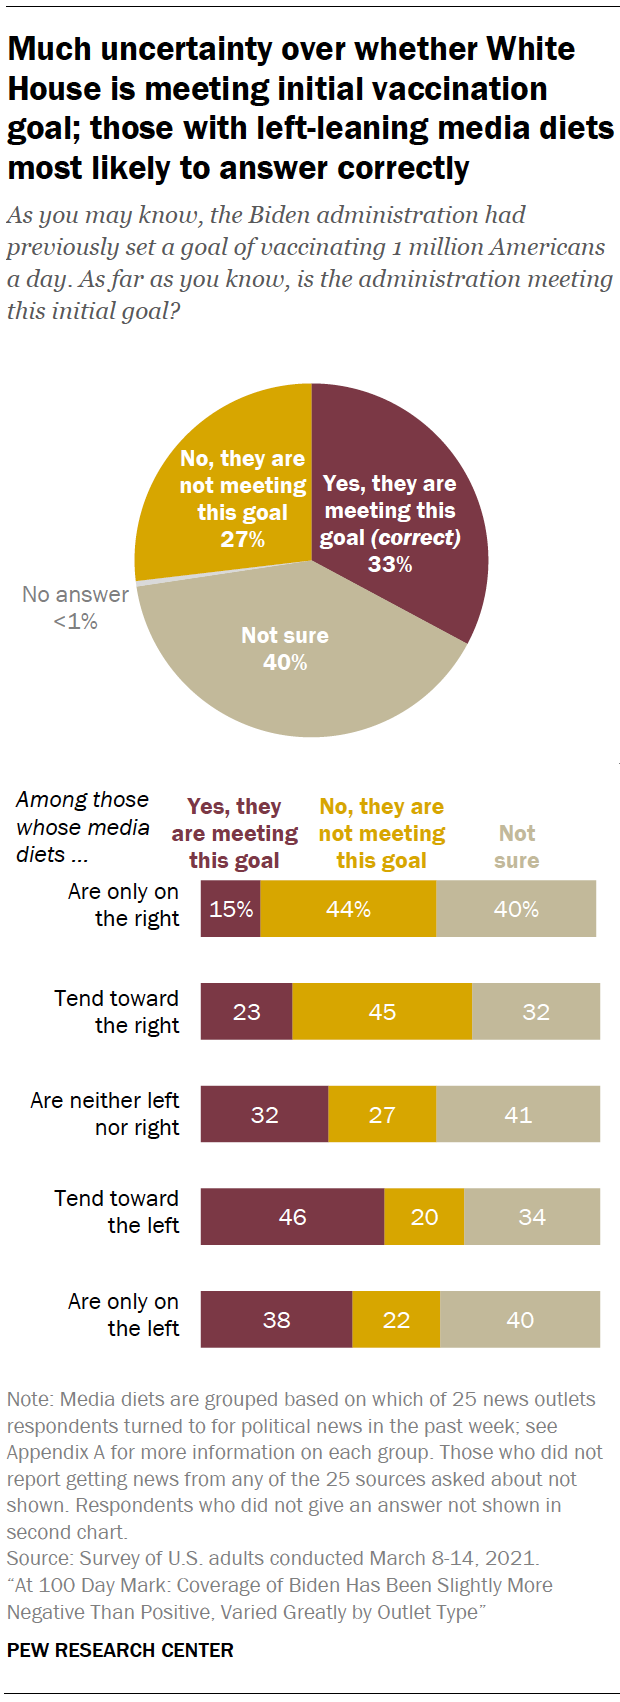 Much uncertainty over whether White House is meeting initial vaccination goal; those with left-leaning media diets most likely to answer correctly